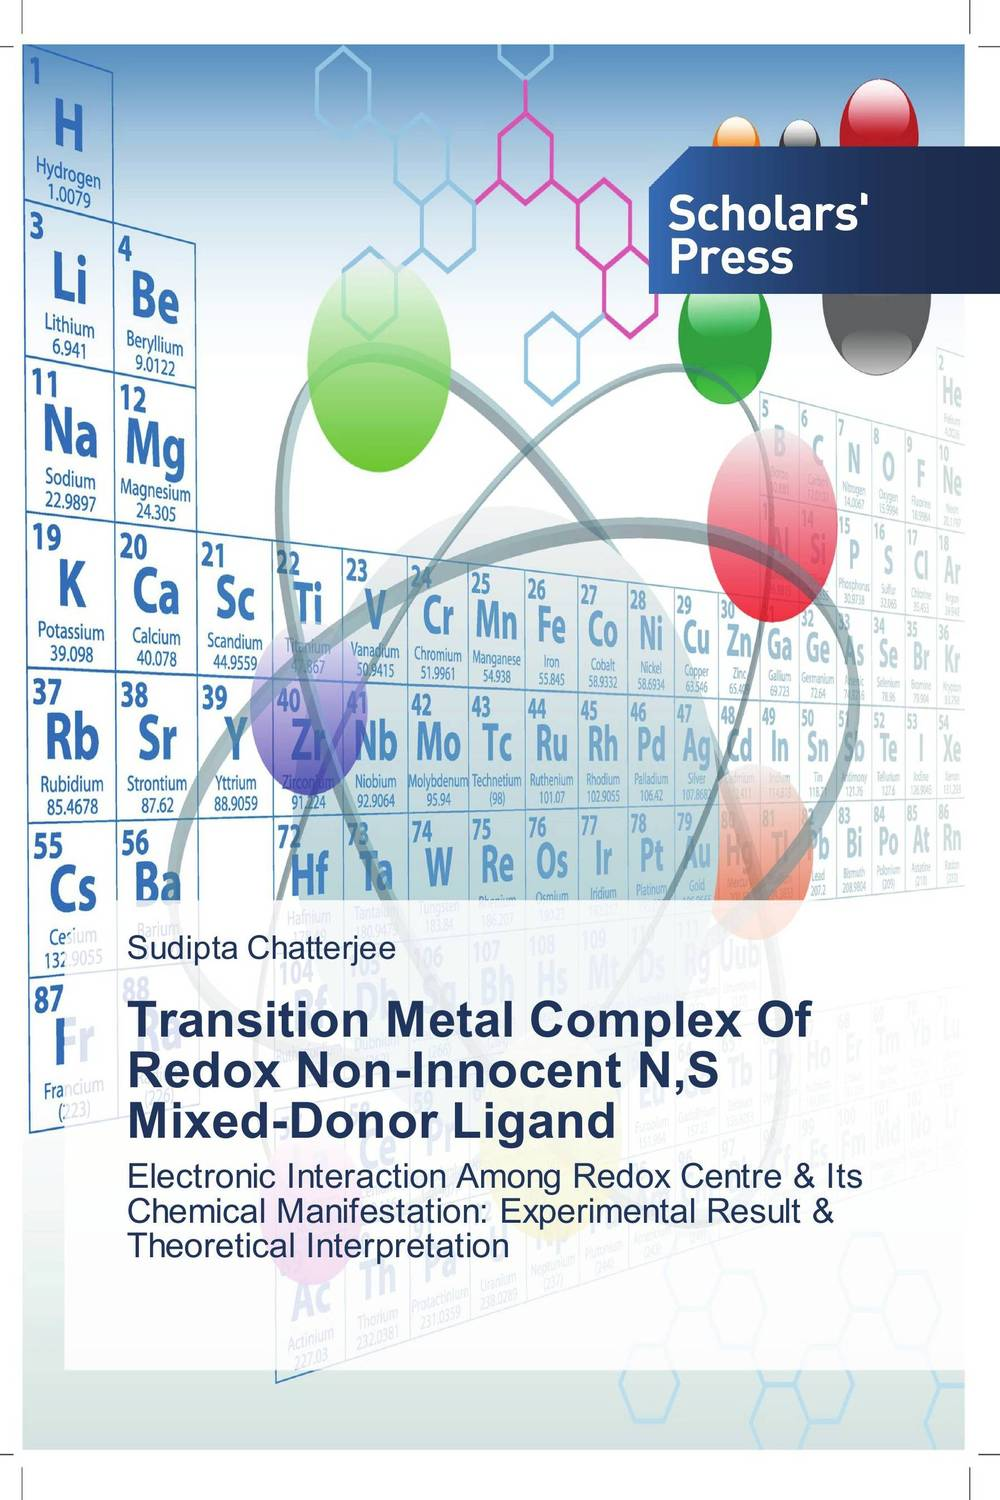 Transition Metal Complex Of Redox Non-Innocent N,S Mixed-Donor Ligand the failure of economic nationalism in slovenia s transition